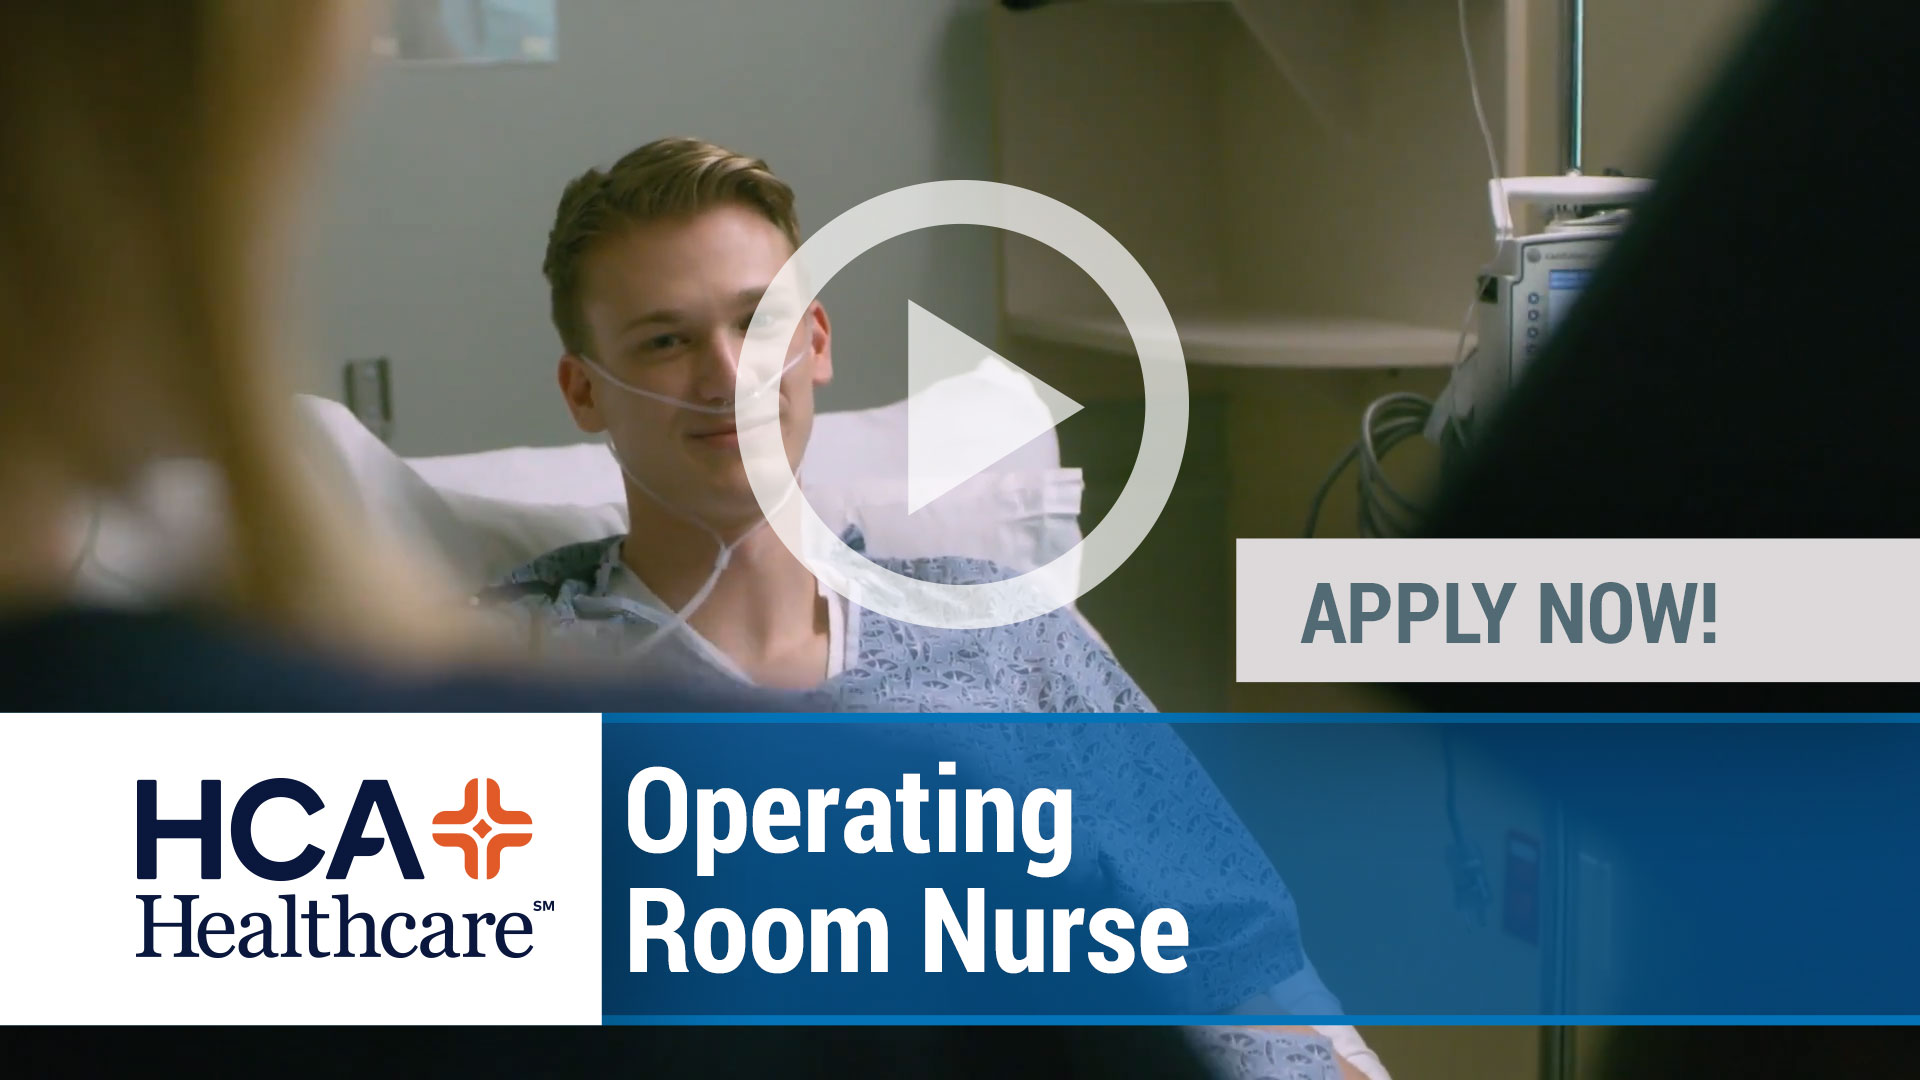 Watch our careers video for available job opening Operating Room Nurse in New Orleans, Louisiana